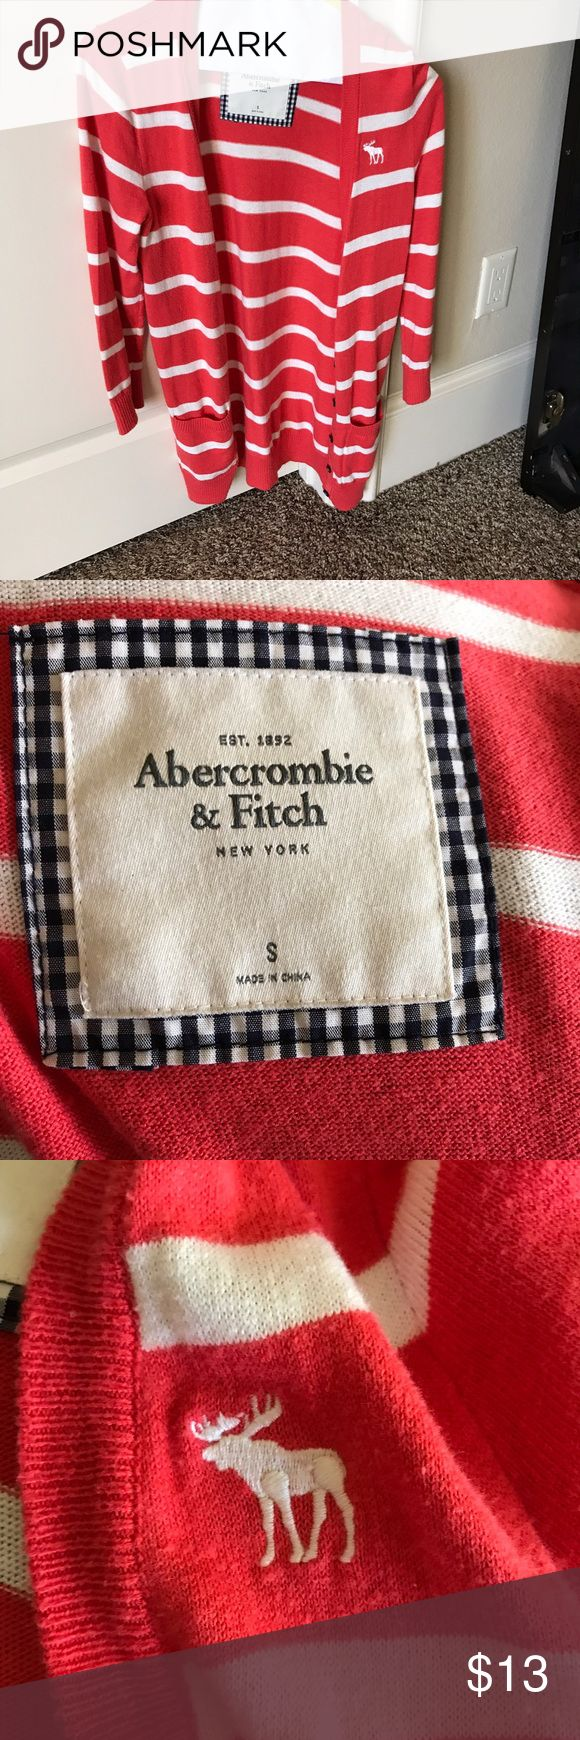 Abercrombie and Fitch Striped Cardigan Abercrombie and Fitch Striped Cardigan Abercrombie & Fitch Sweaters Cardigans